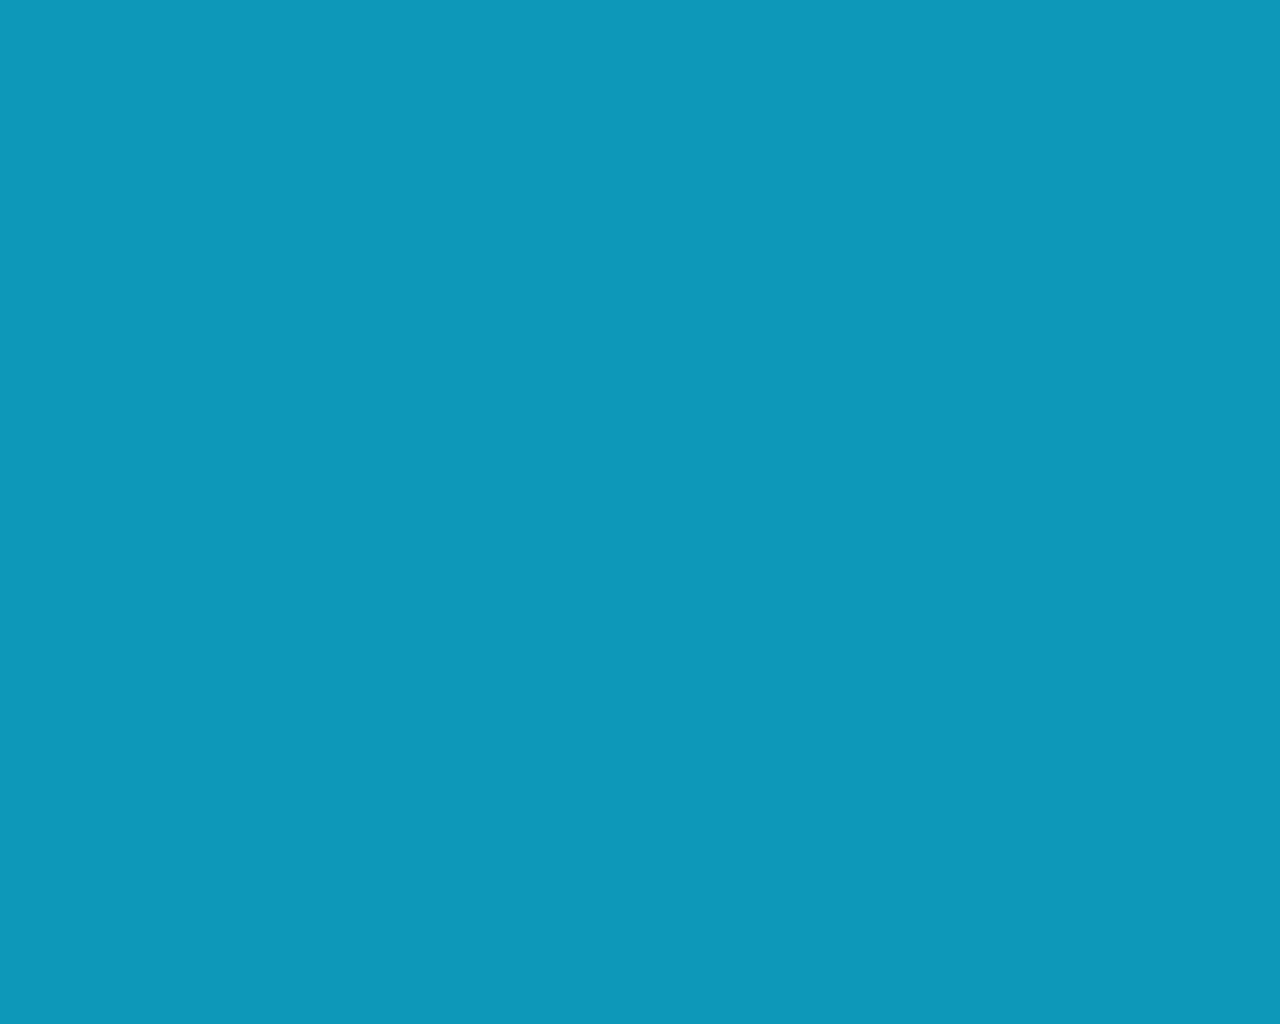 1280x1024 Blue-green Solid Color Background